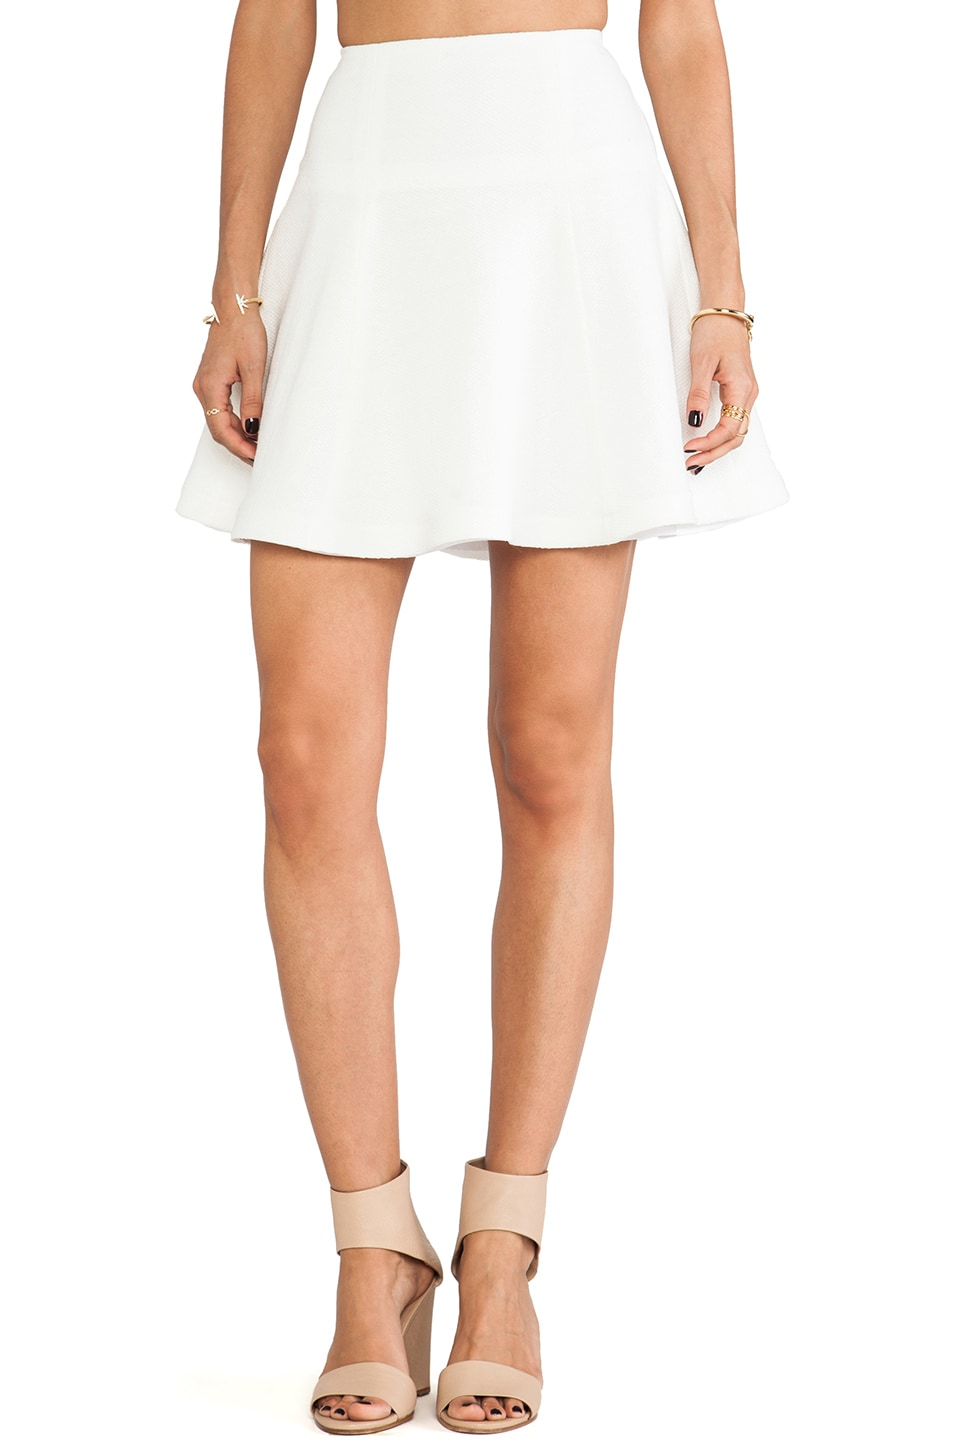 Nanette Lepore Smitten Skirt in White